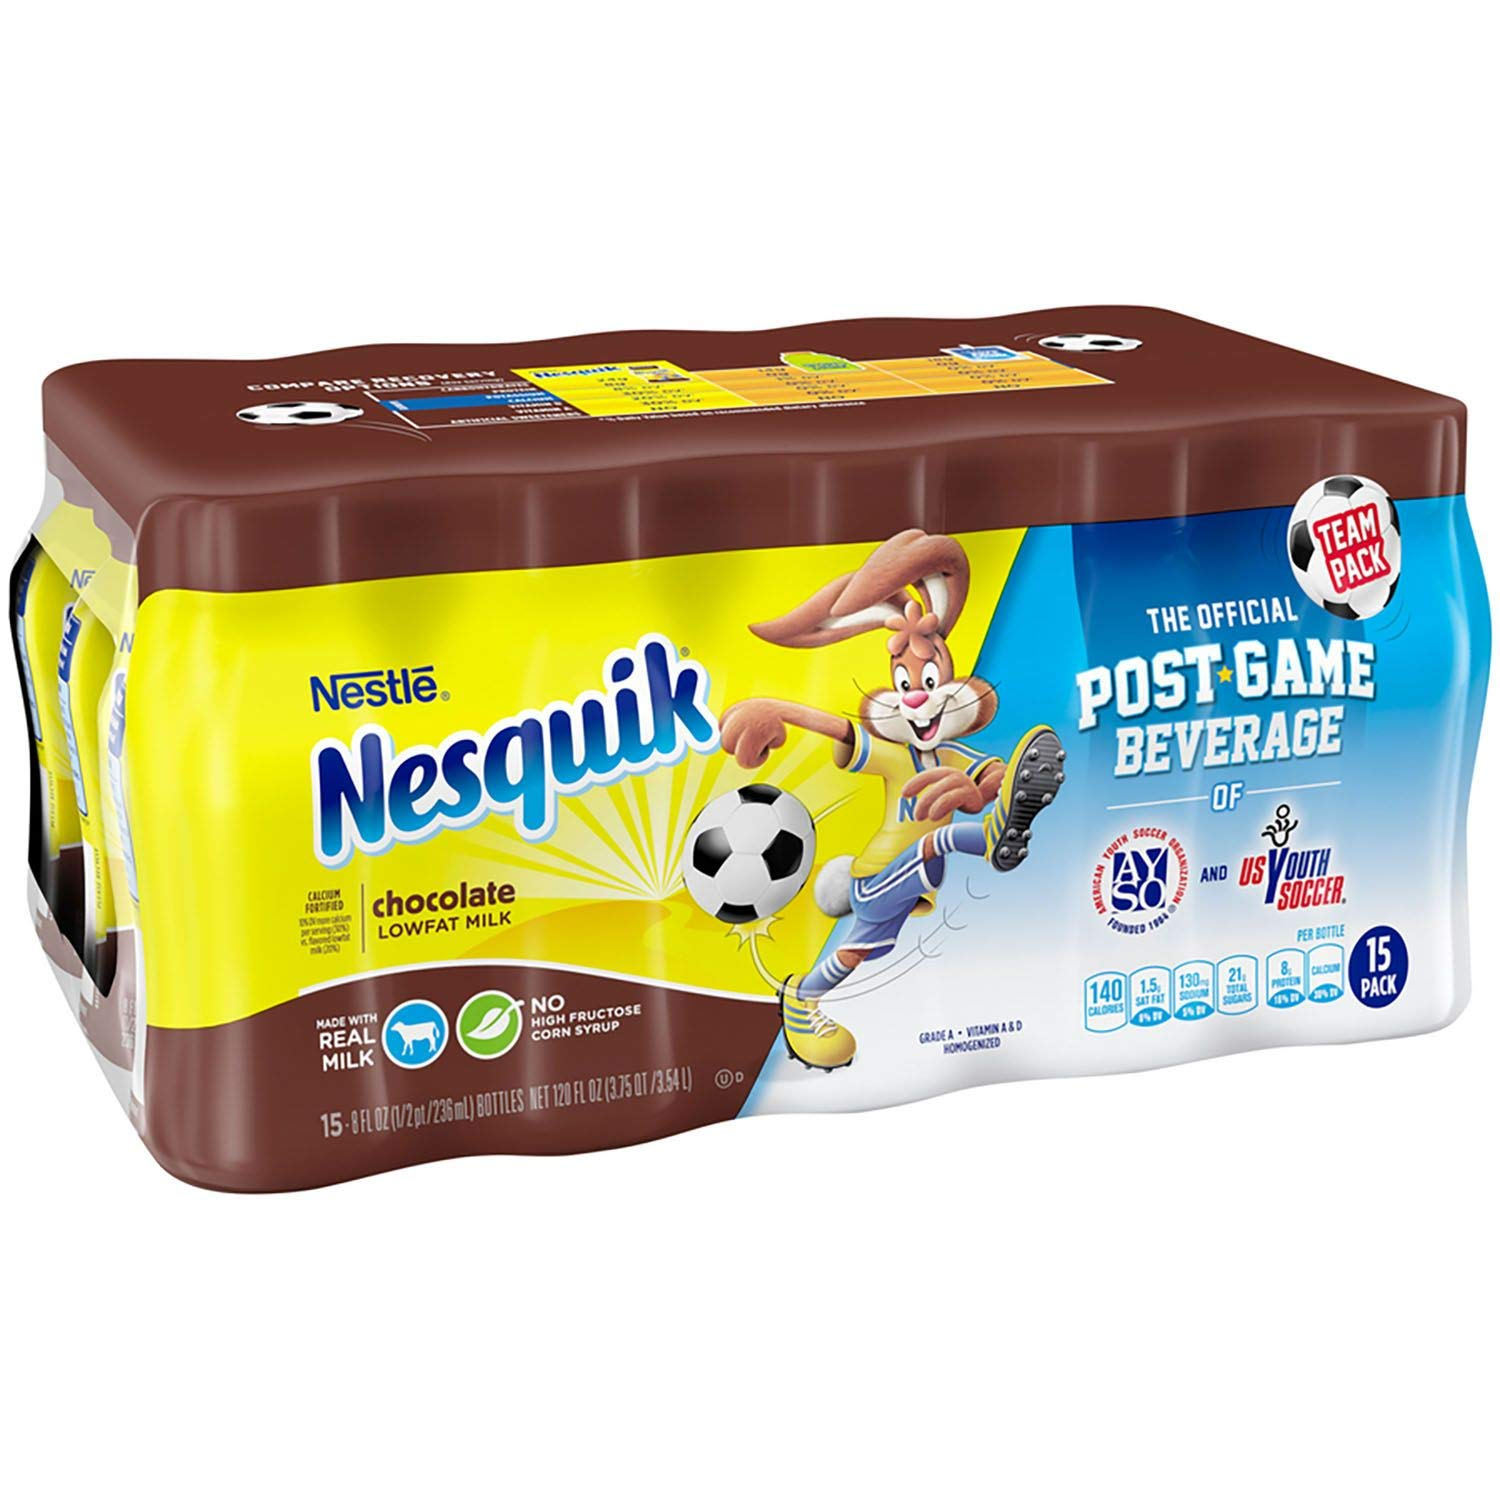 Nesquik Chocolate Low Fat Milk 8 oz. bottles, 15 pk. (pack of 3) A1